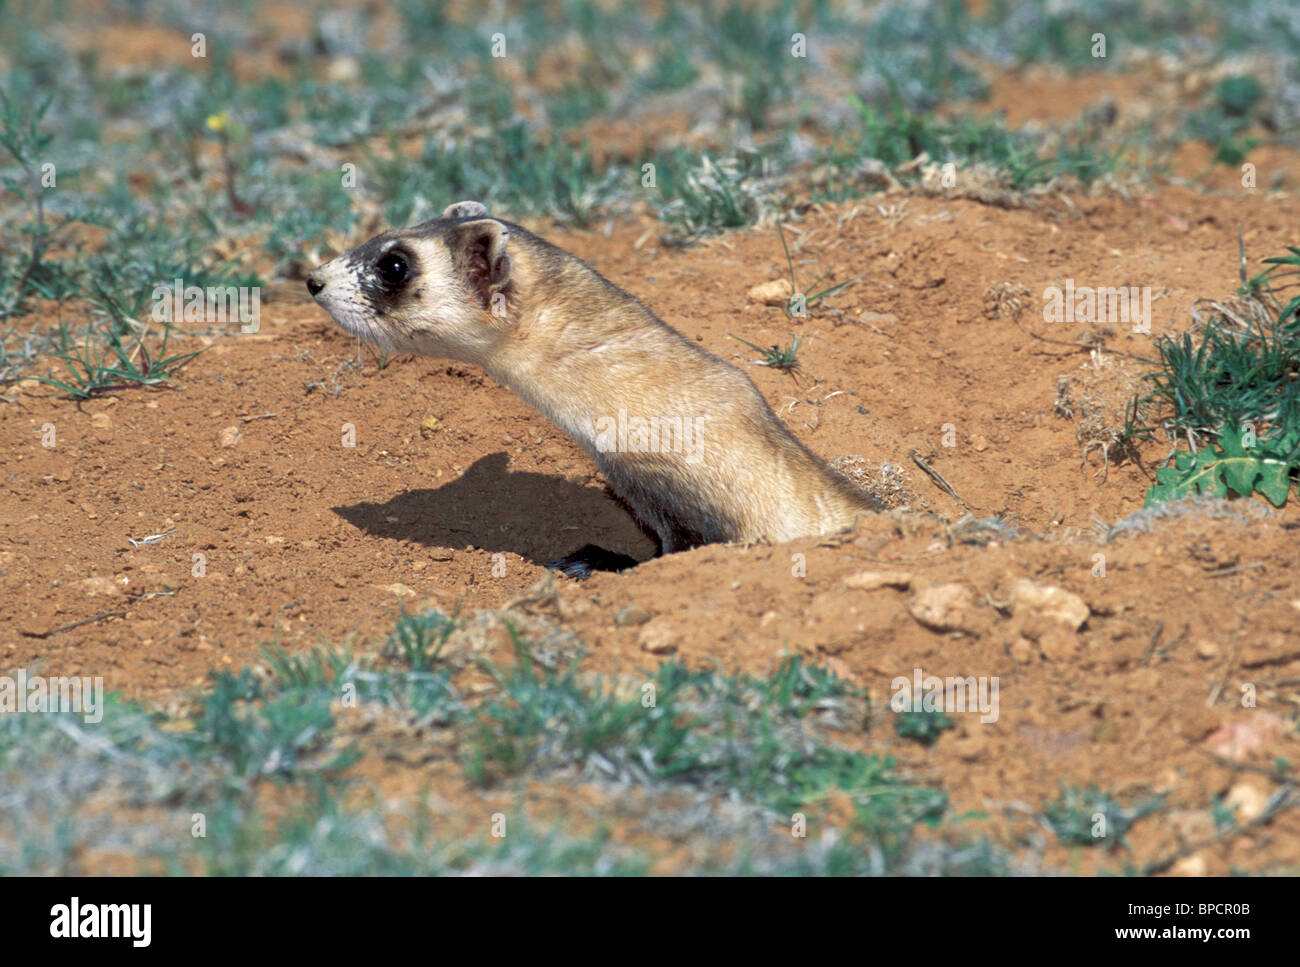 Black-footed Ferret  ENDANGERED - Stock Image